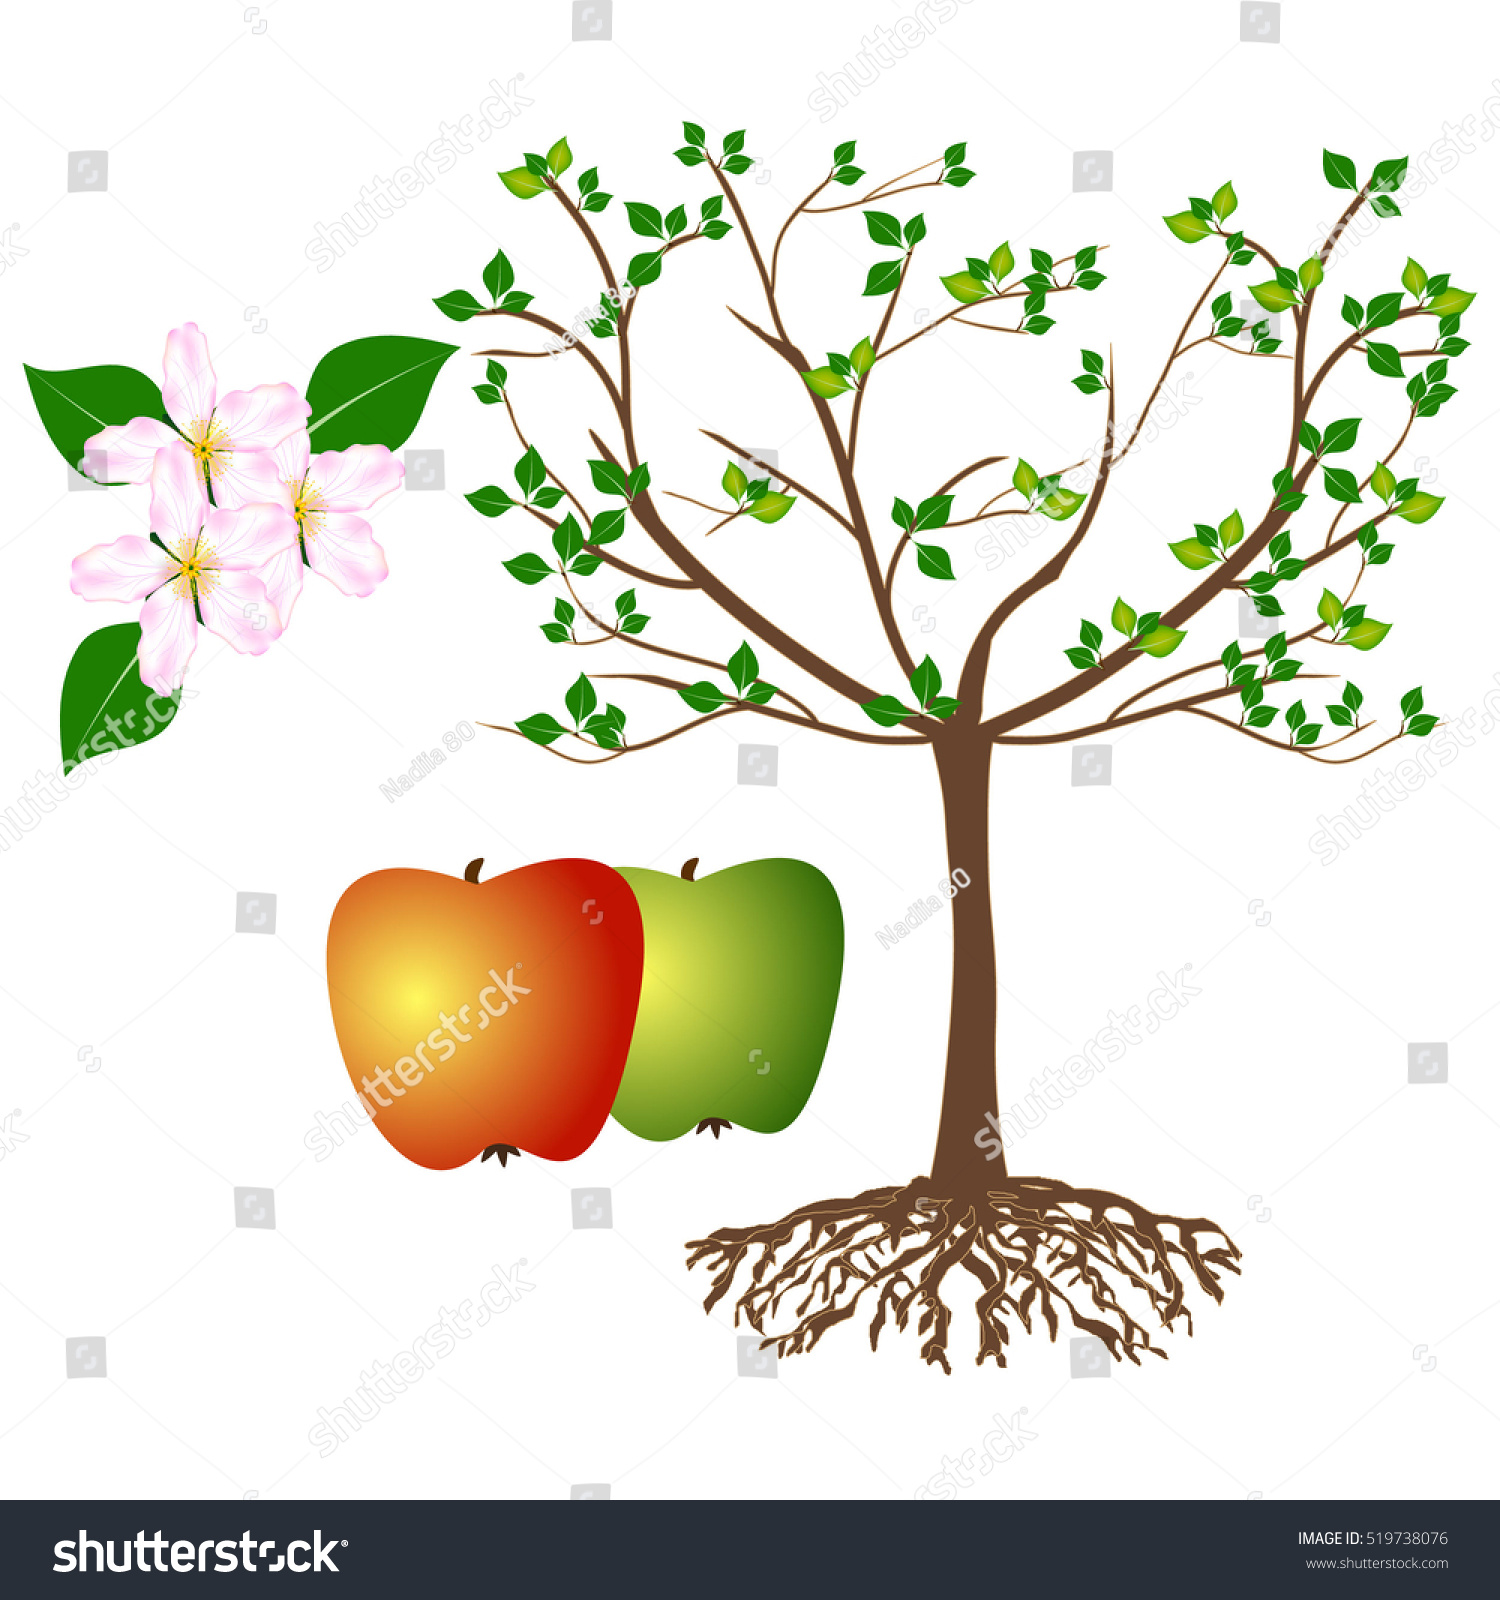 Illustration Shows Parts Plant Apple Trees Stock Vector